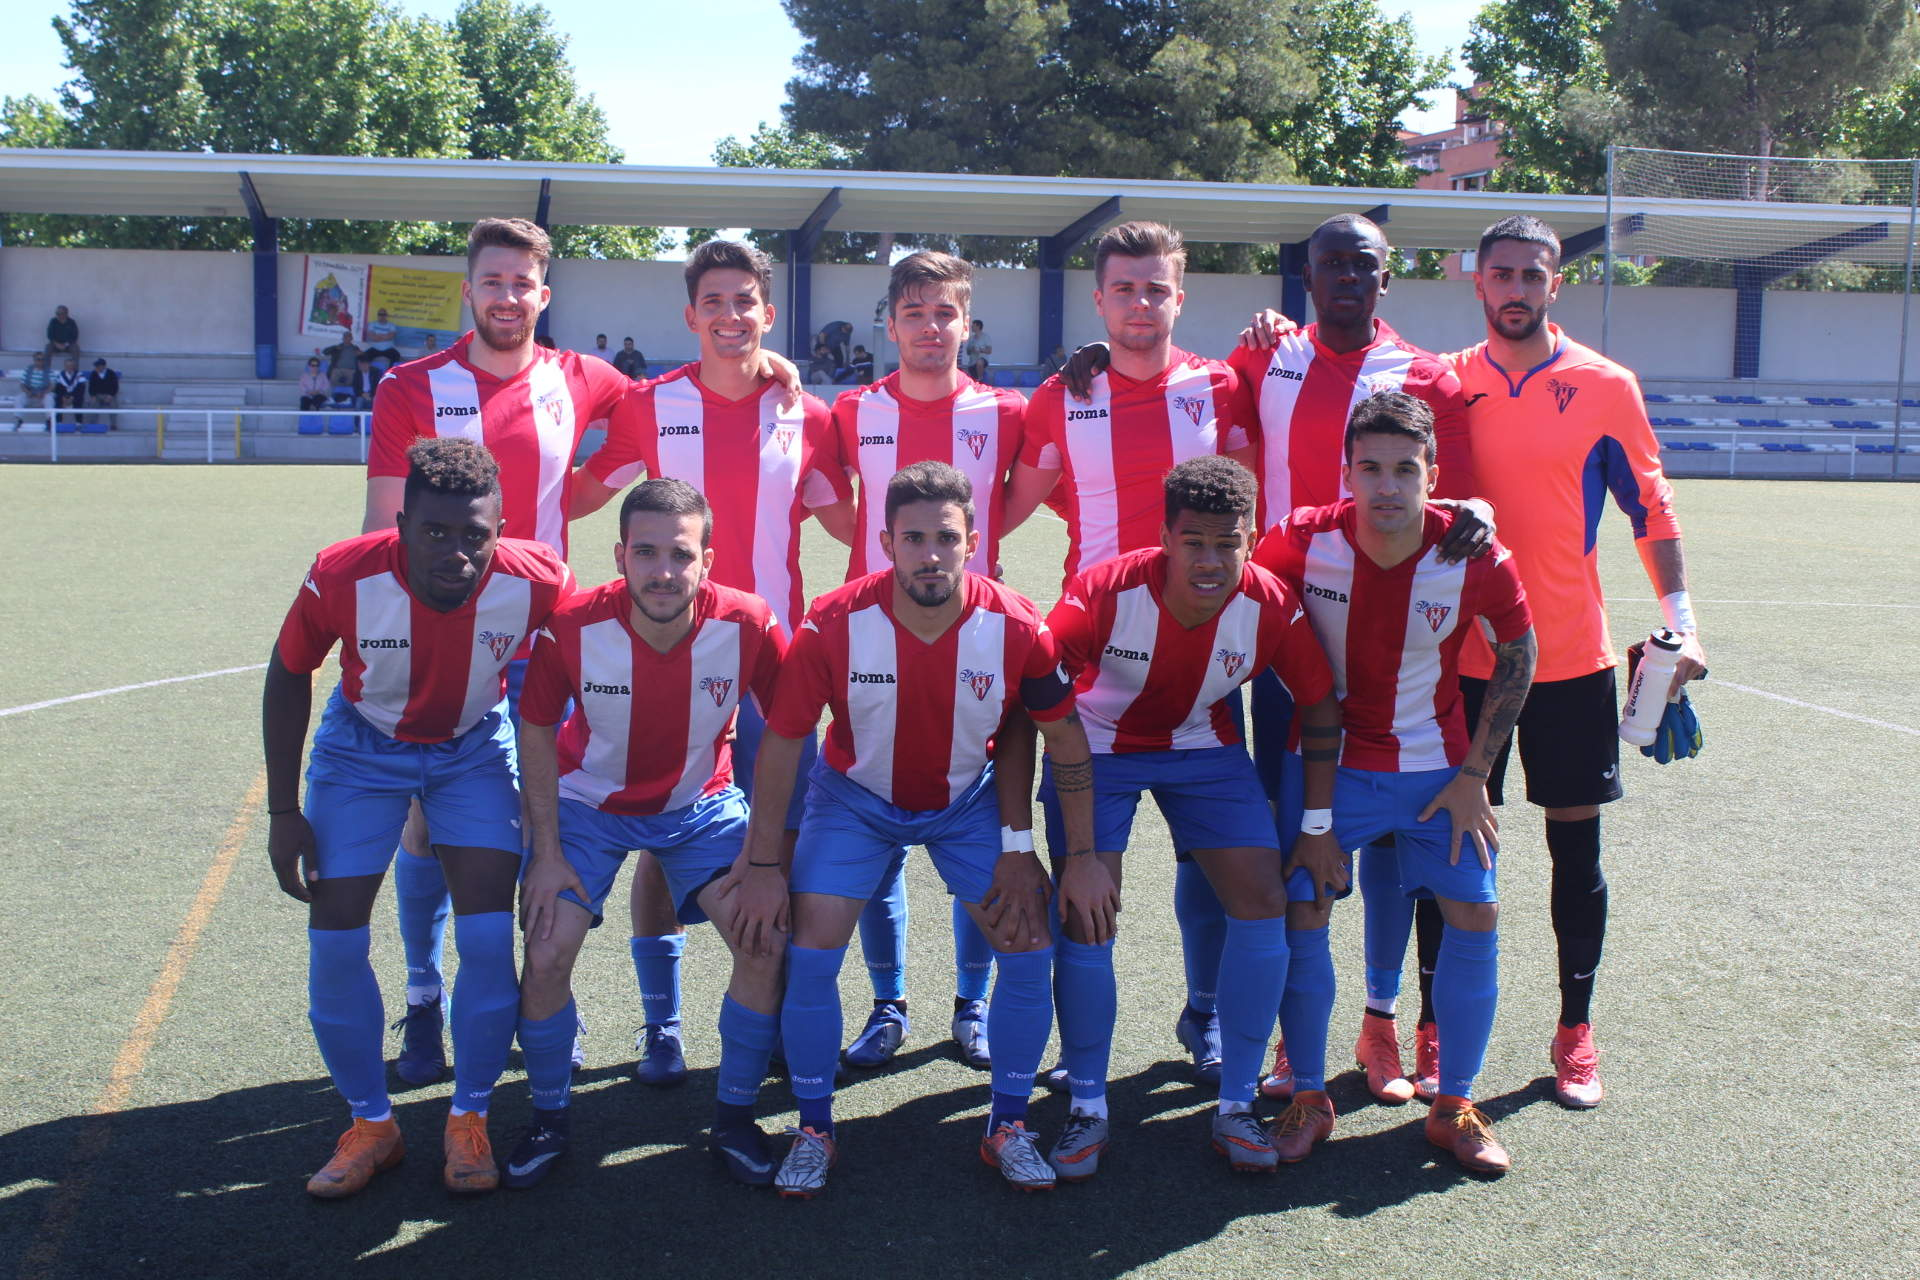 CDC MOSCARDÓ, 2 – CD SITIO DE ARANJUEZ, 2.